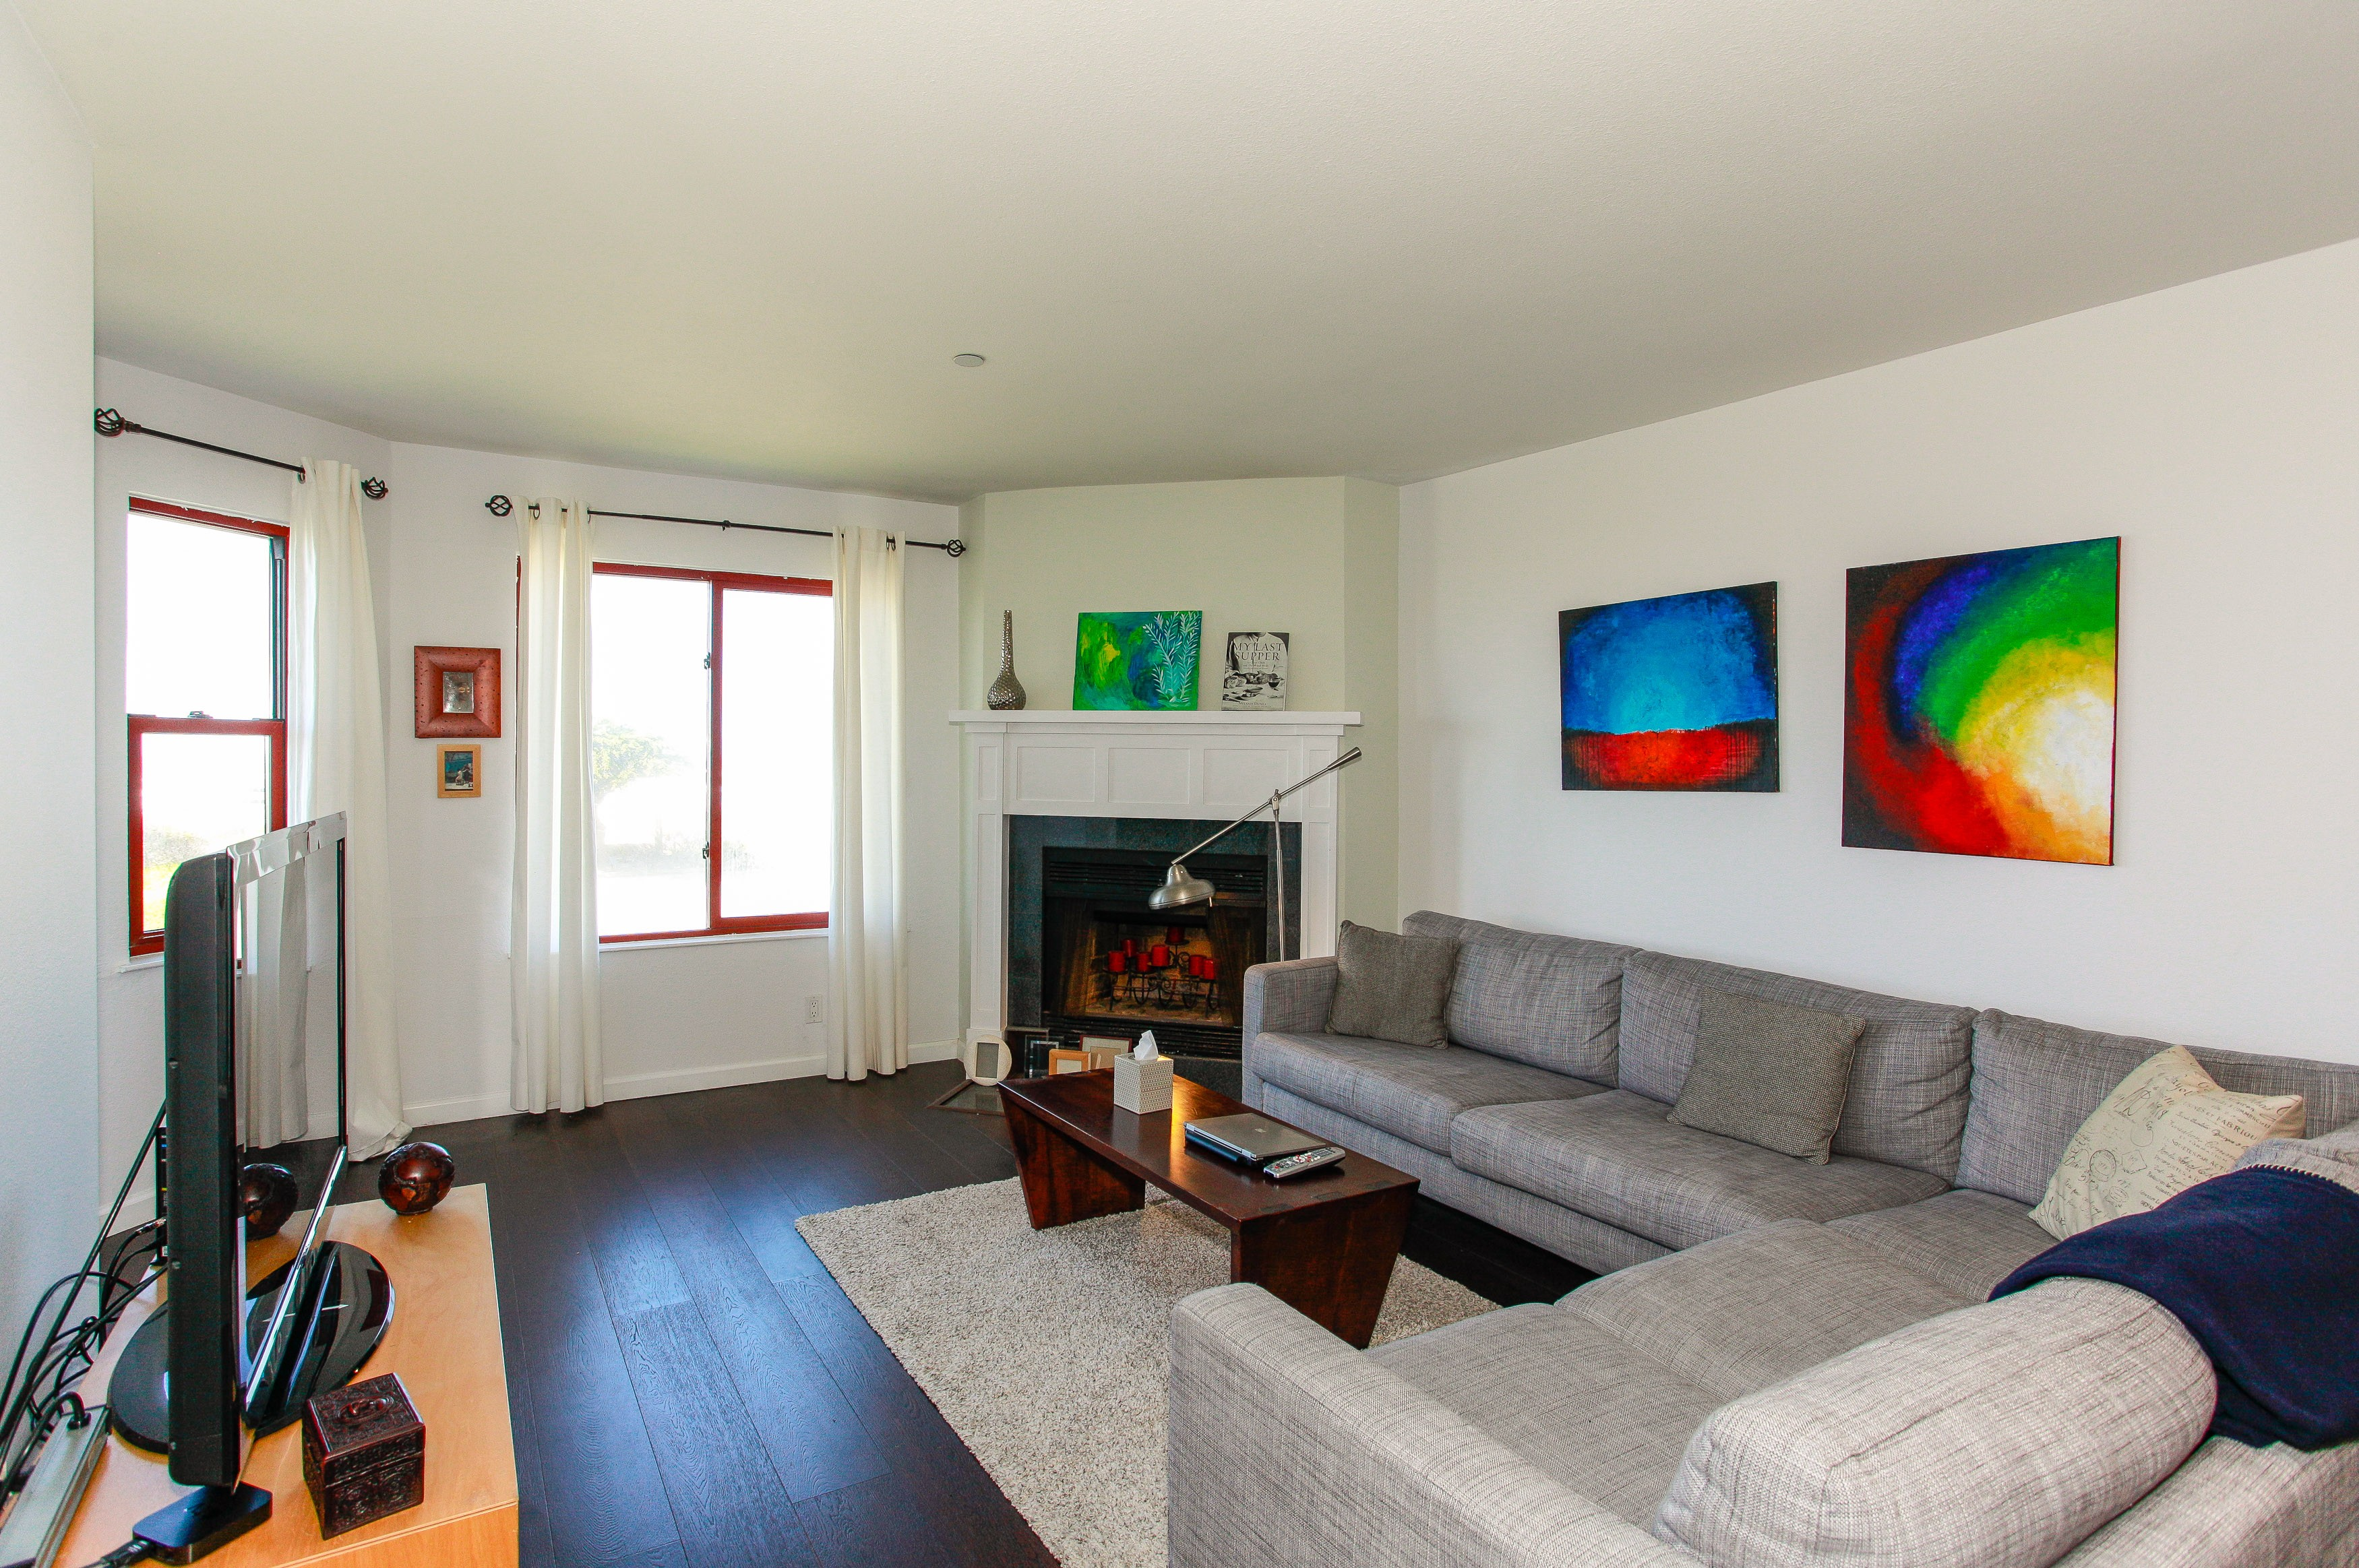 855 la playa street 163 san francisco ca 94121 2 - Two bedroom apartments san francisco ...